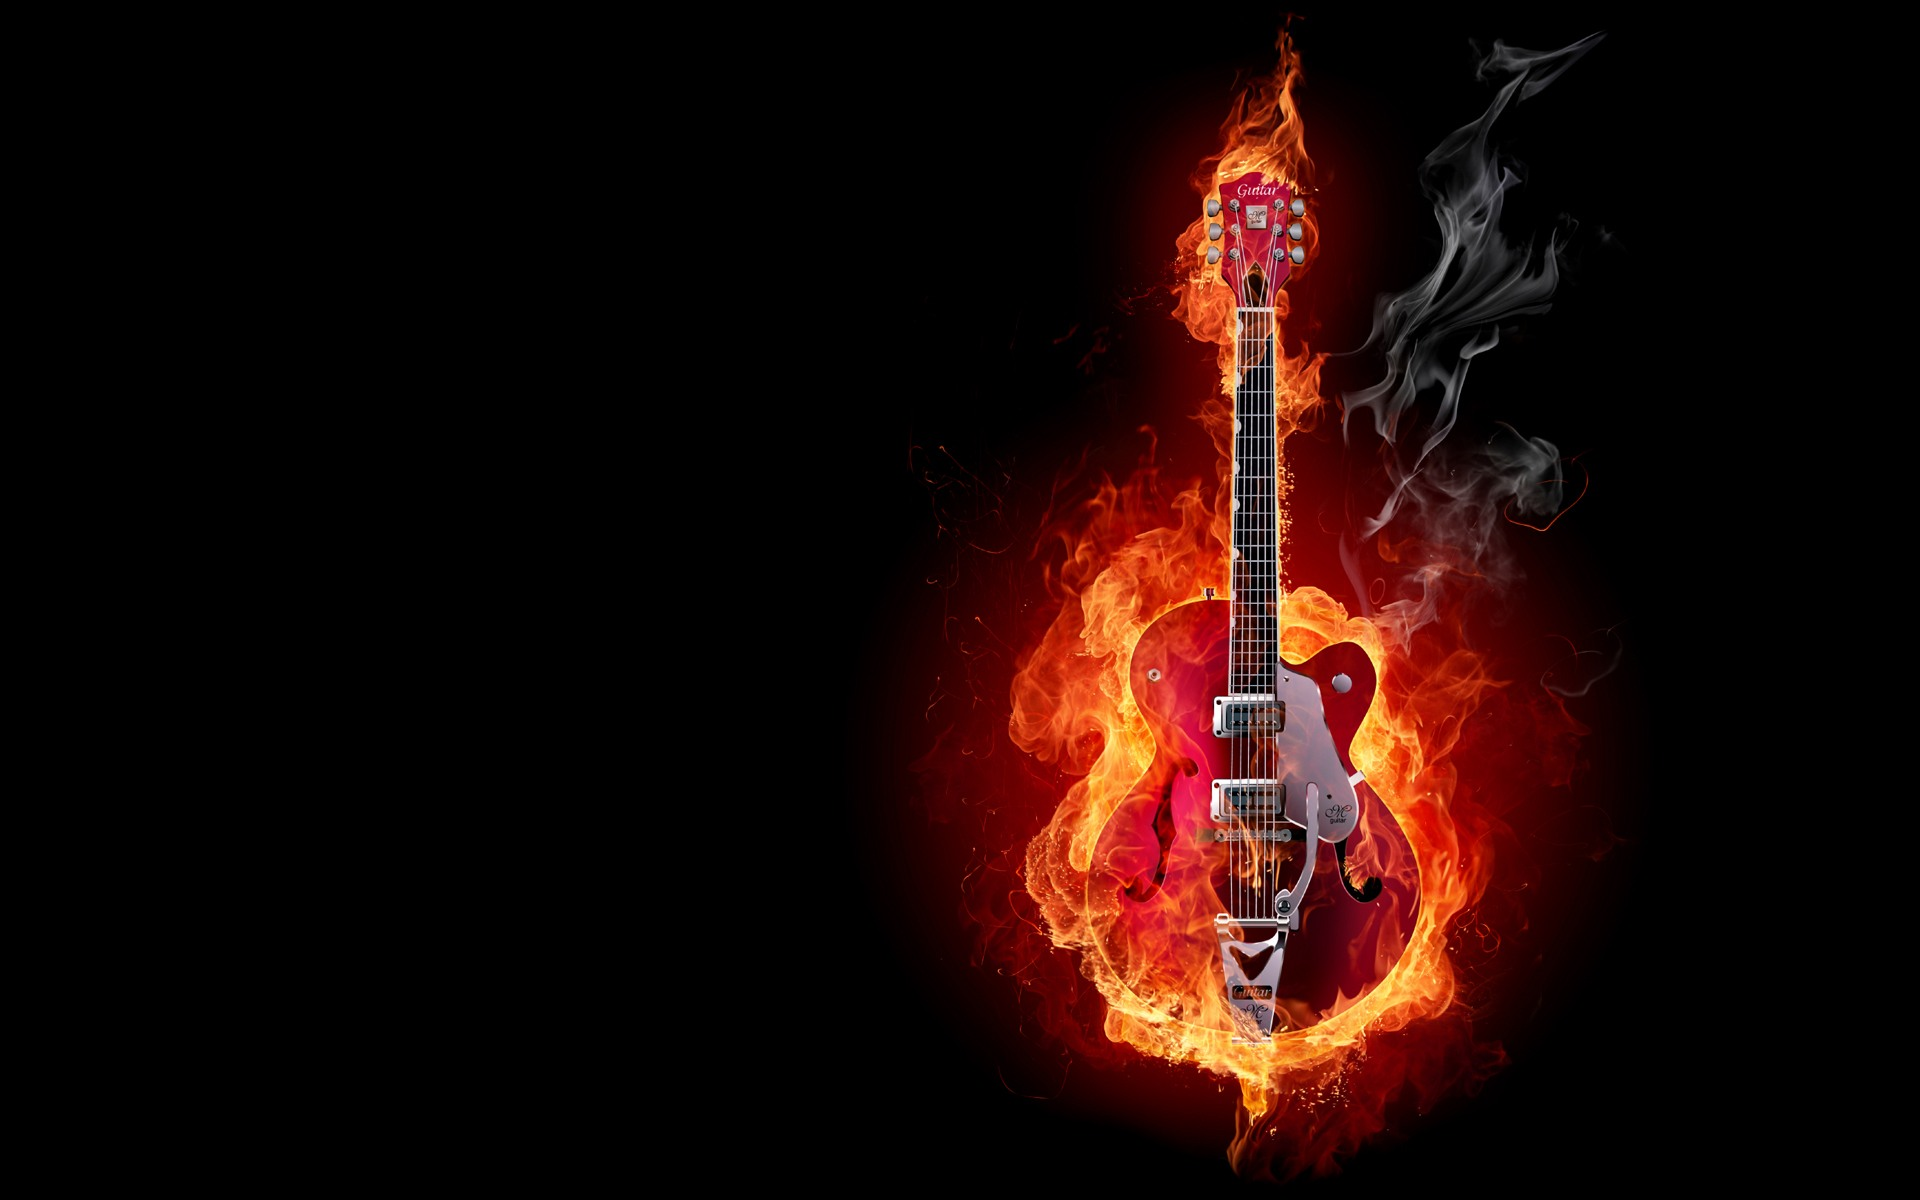 HD Fire Electric Guitar Hd Windows    Electrical Fire HD Wallpaper